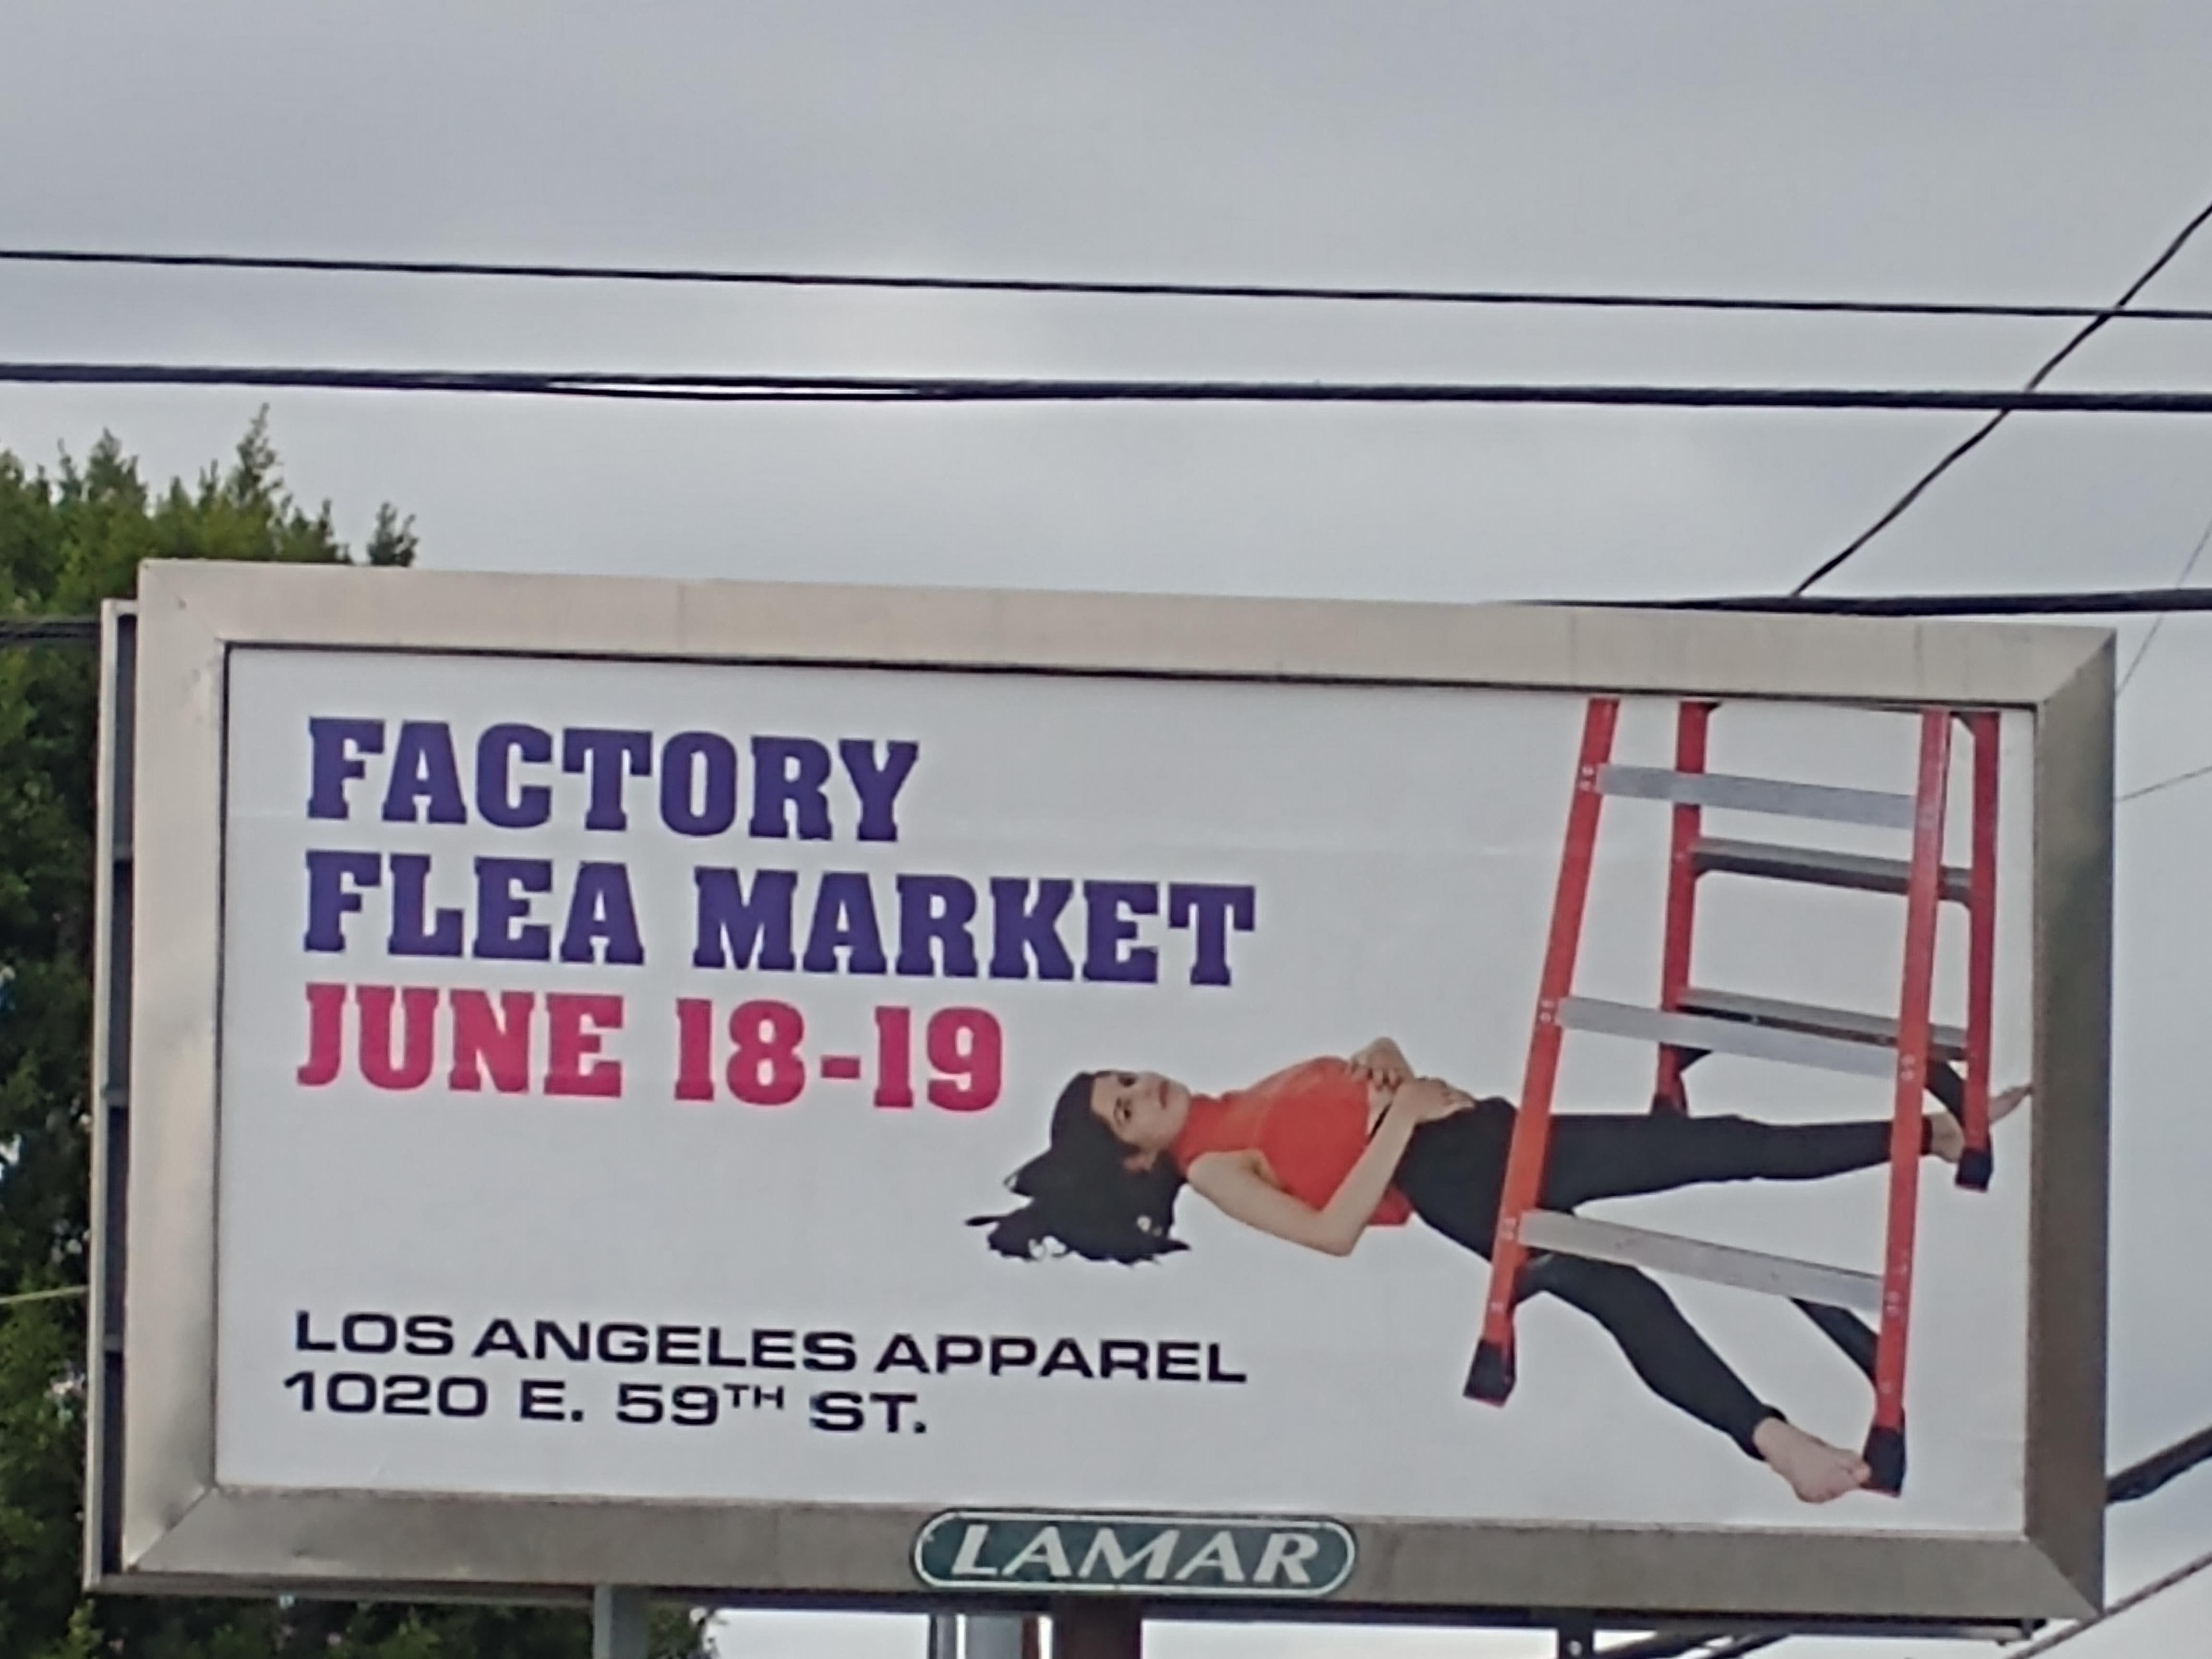 Wtf is happening on this billboard?